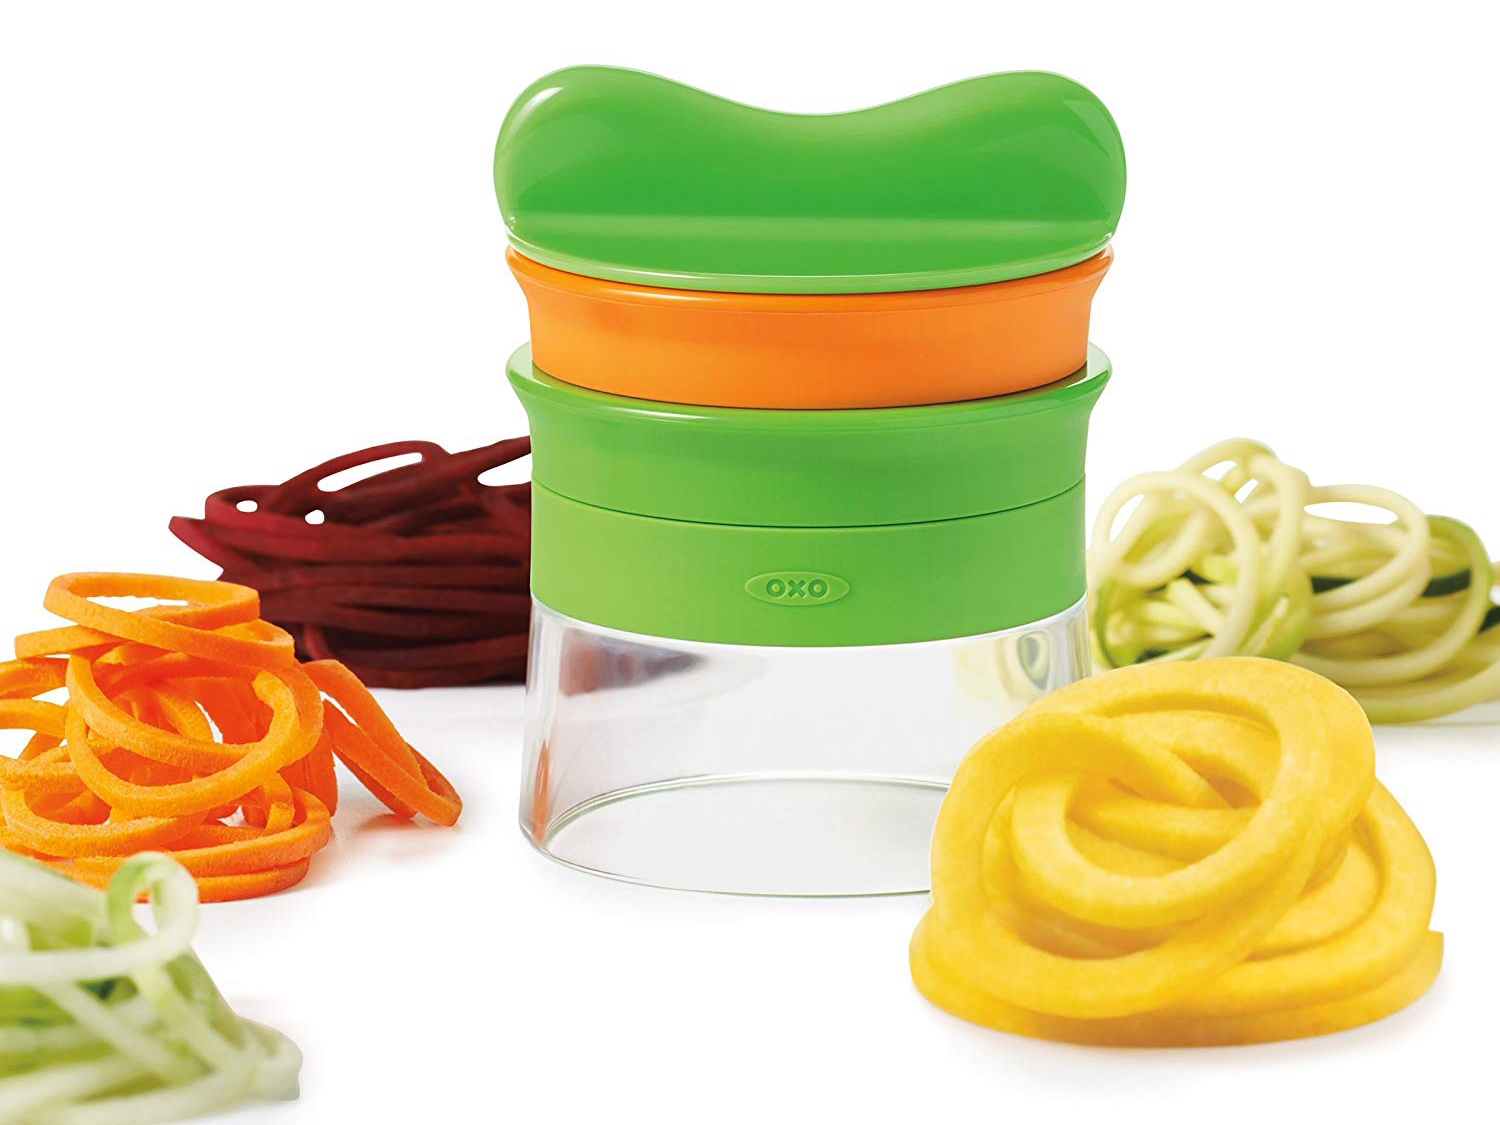 OXO's Top-rated Spiralizer Is on Sale for Amazon Prime Day — But Only for the Next Few Hours